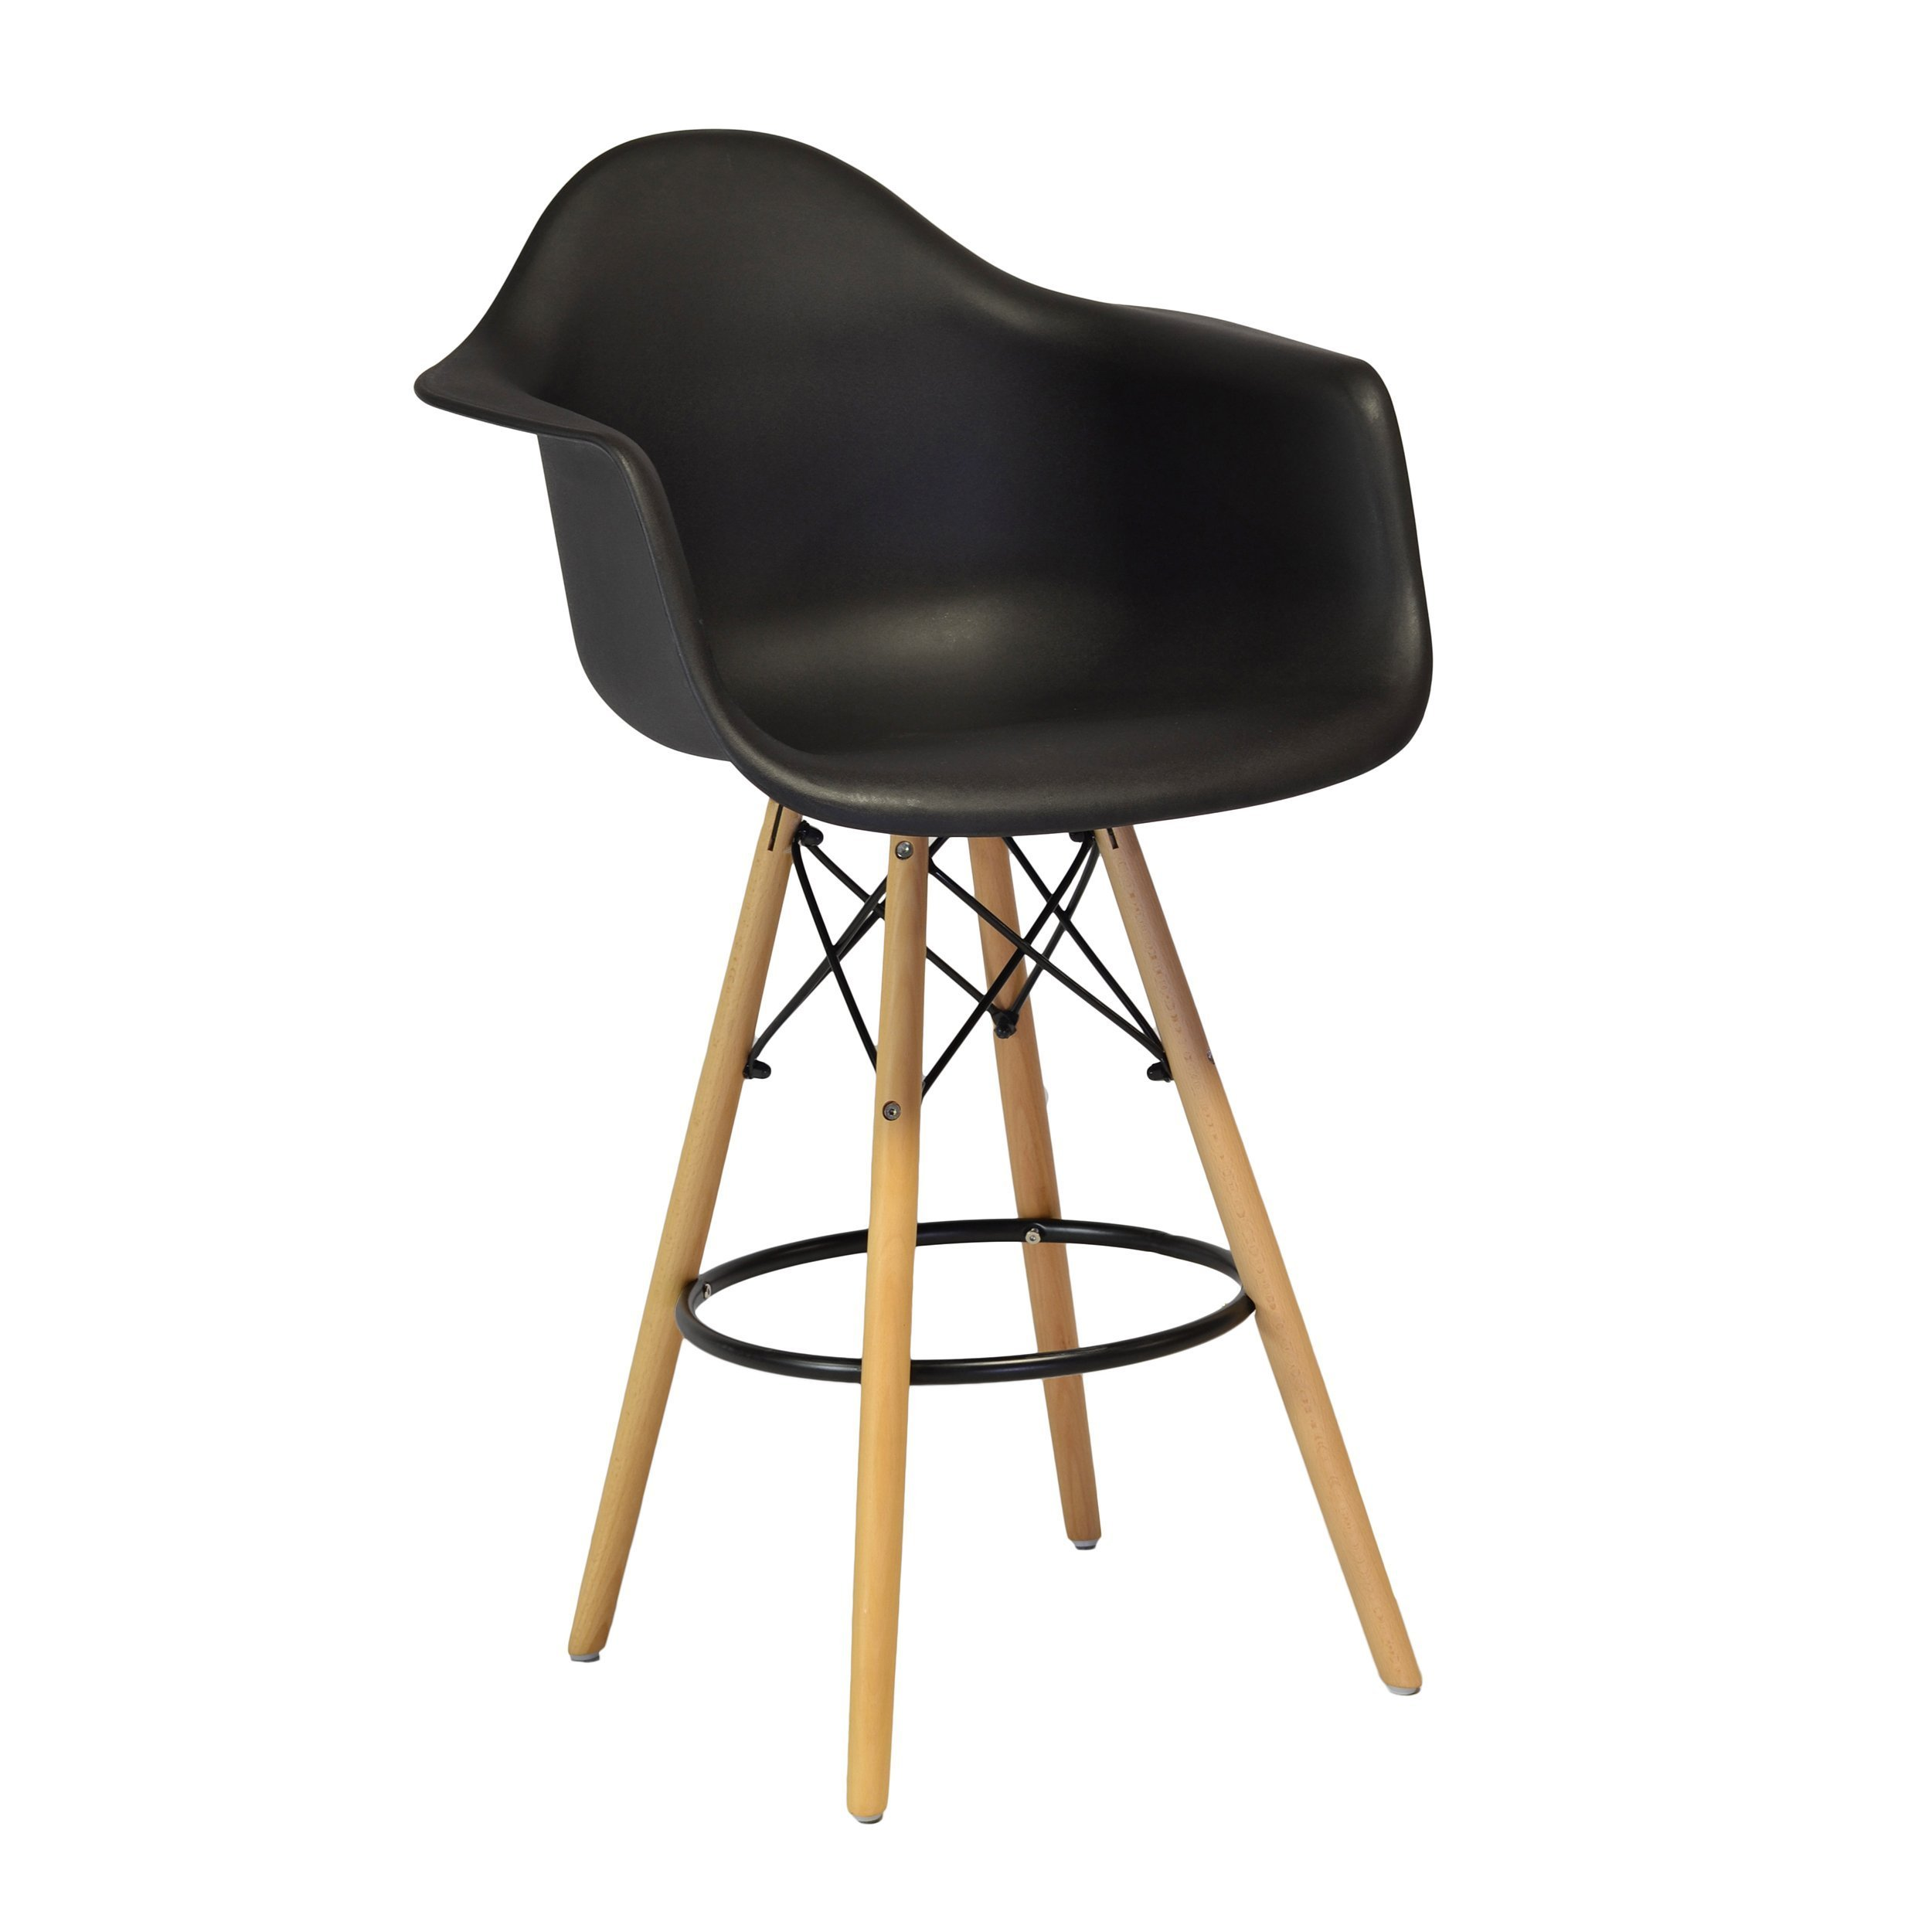 Design Tree Home Charles Eames Style DAW Counter Stool, Black ABS Plastic (Black)